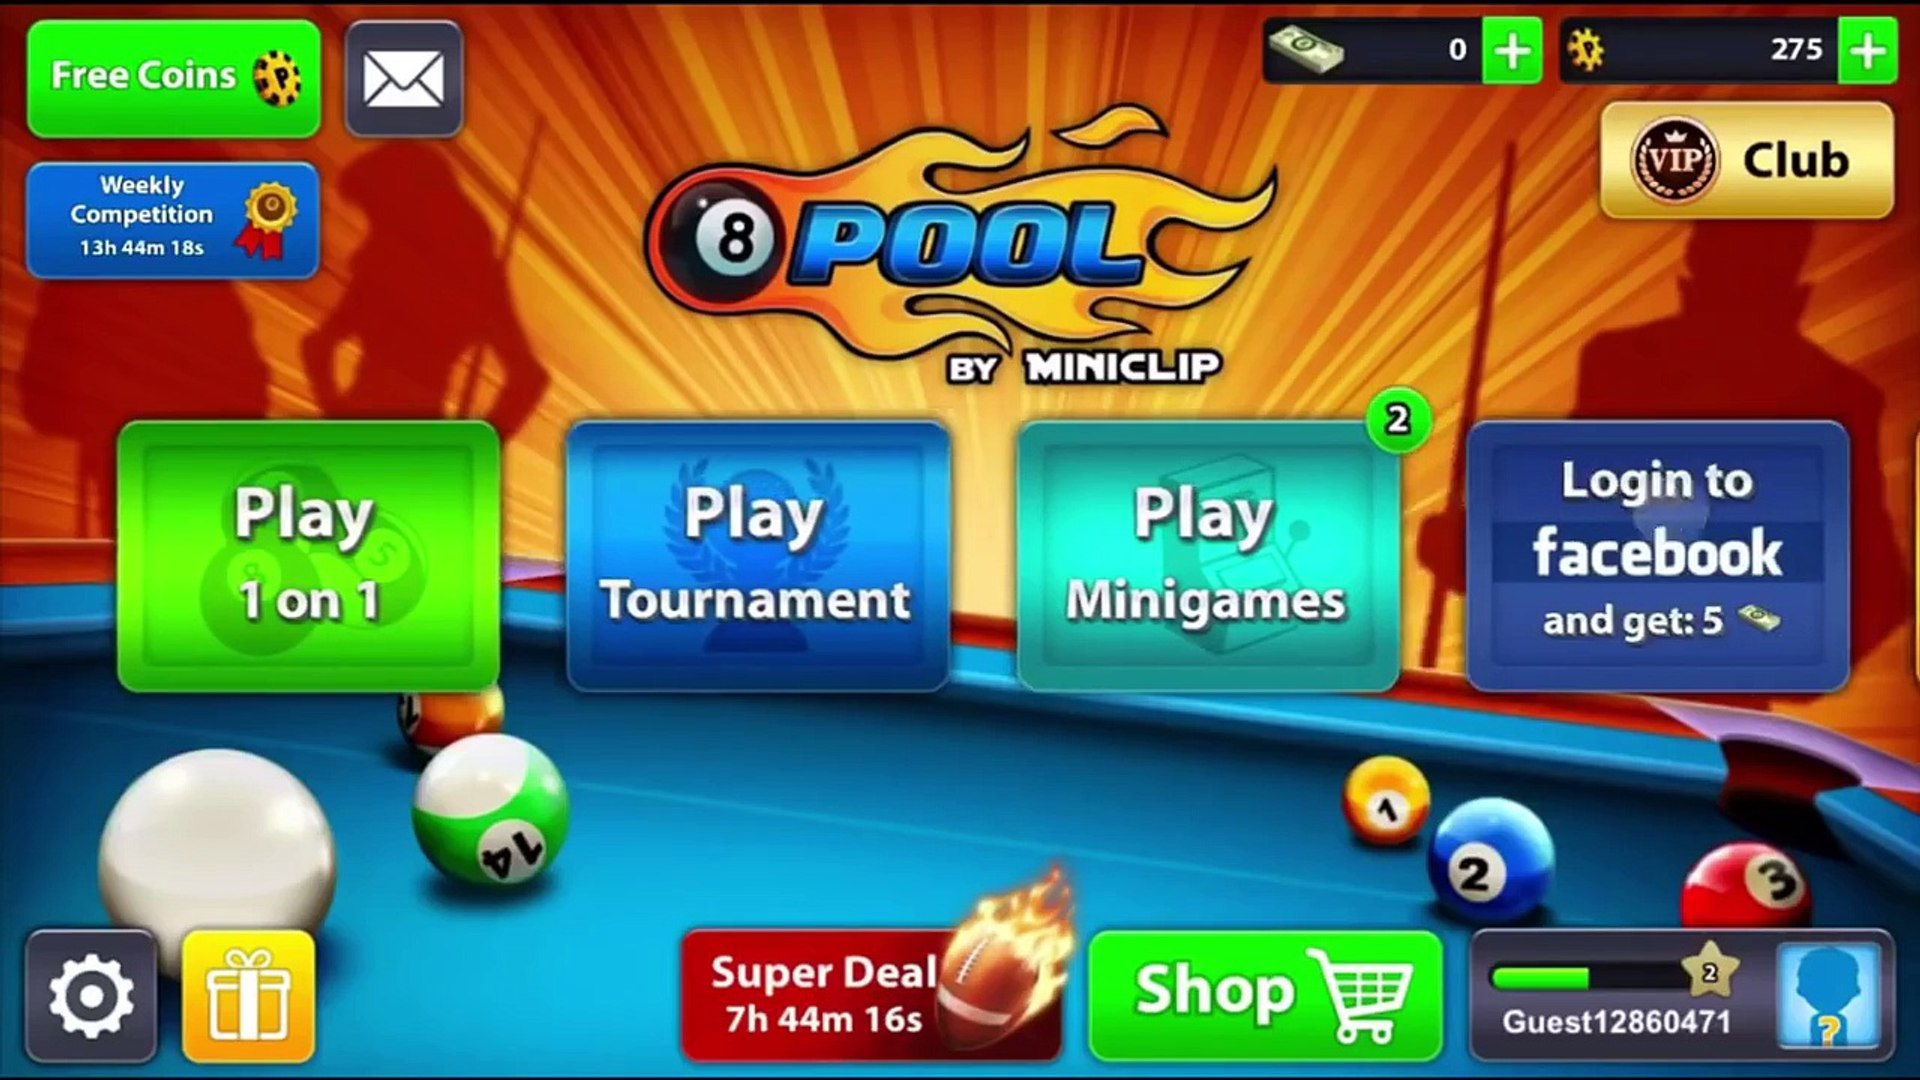 HOW TO BECOME BLACK DIAMOND VIP IN MINICLIP 8 BALL POOL -